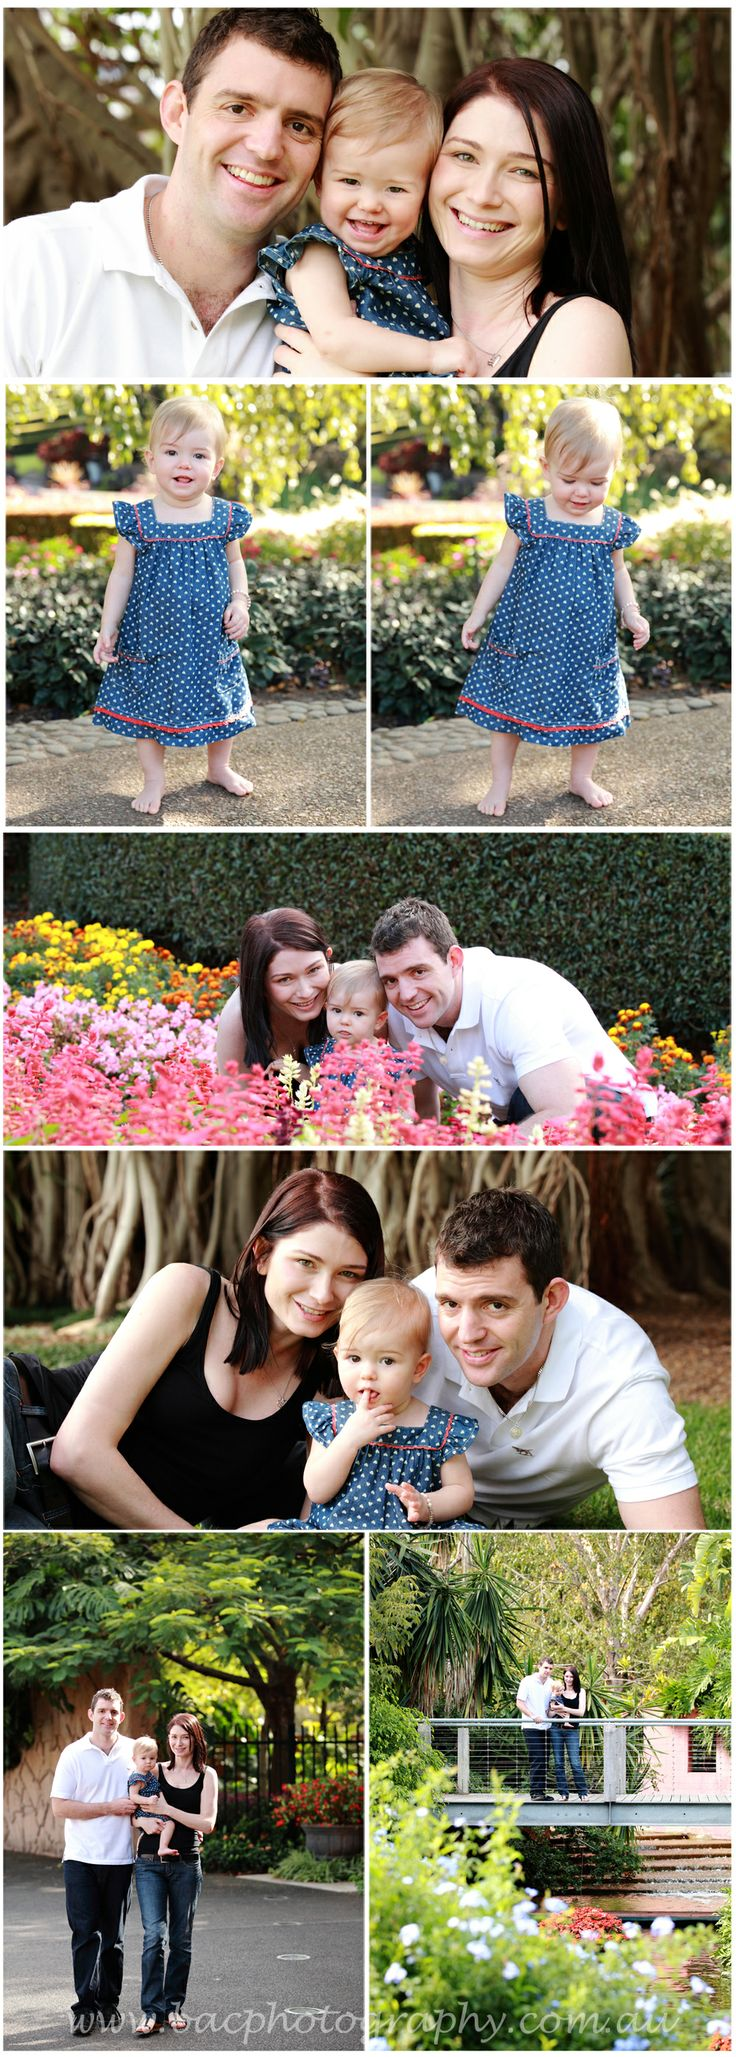 Outdoor Lifestyle Photography - Family time together - Roma St Parklands